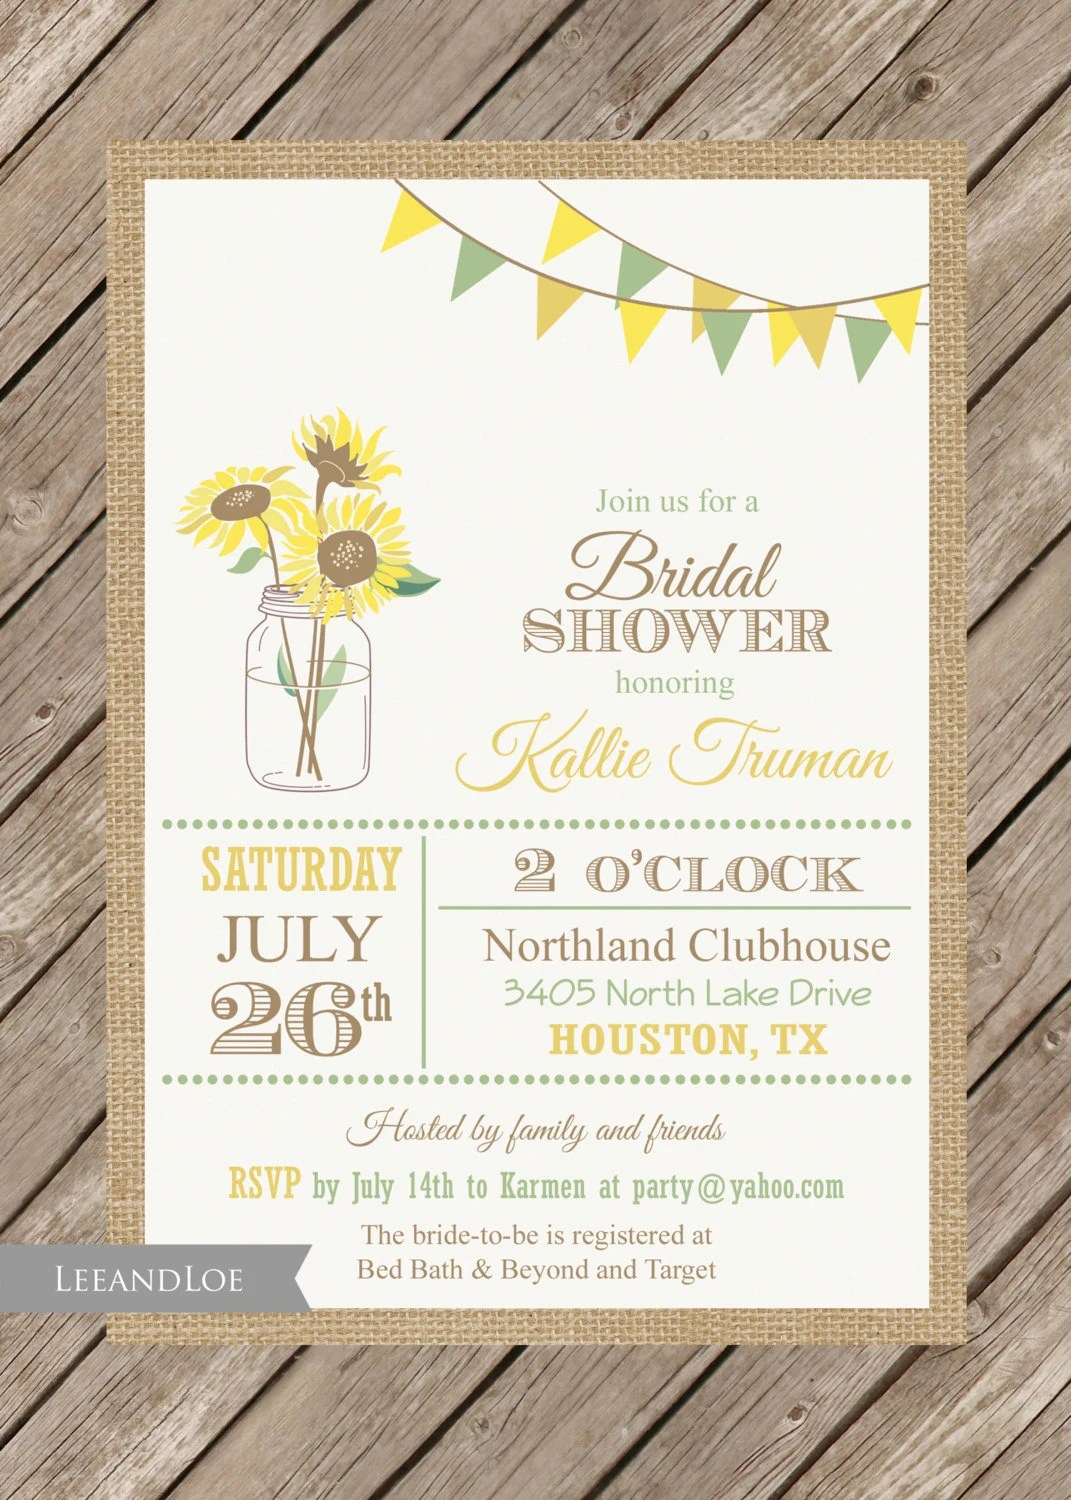 Bridal Shower Invitations Mailed Out